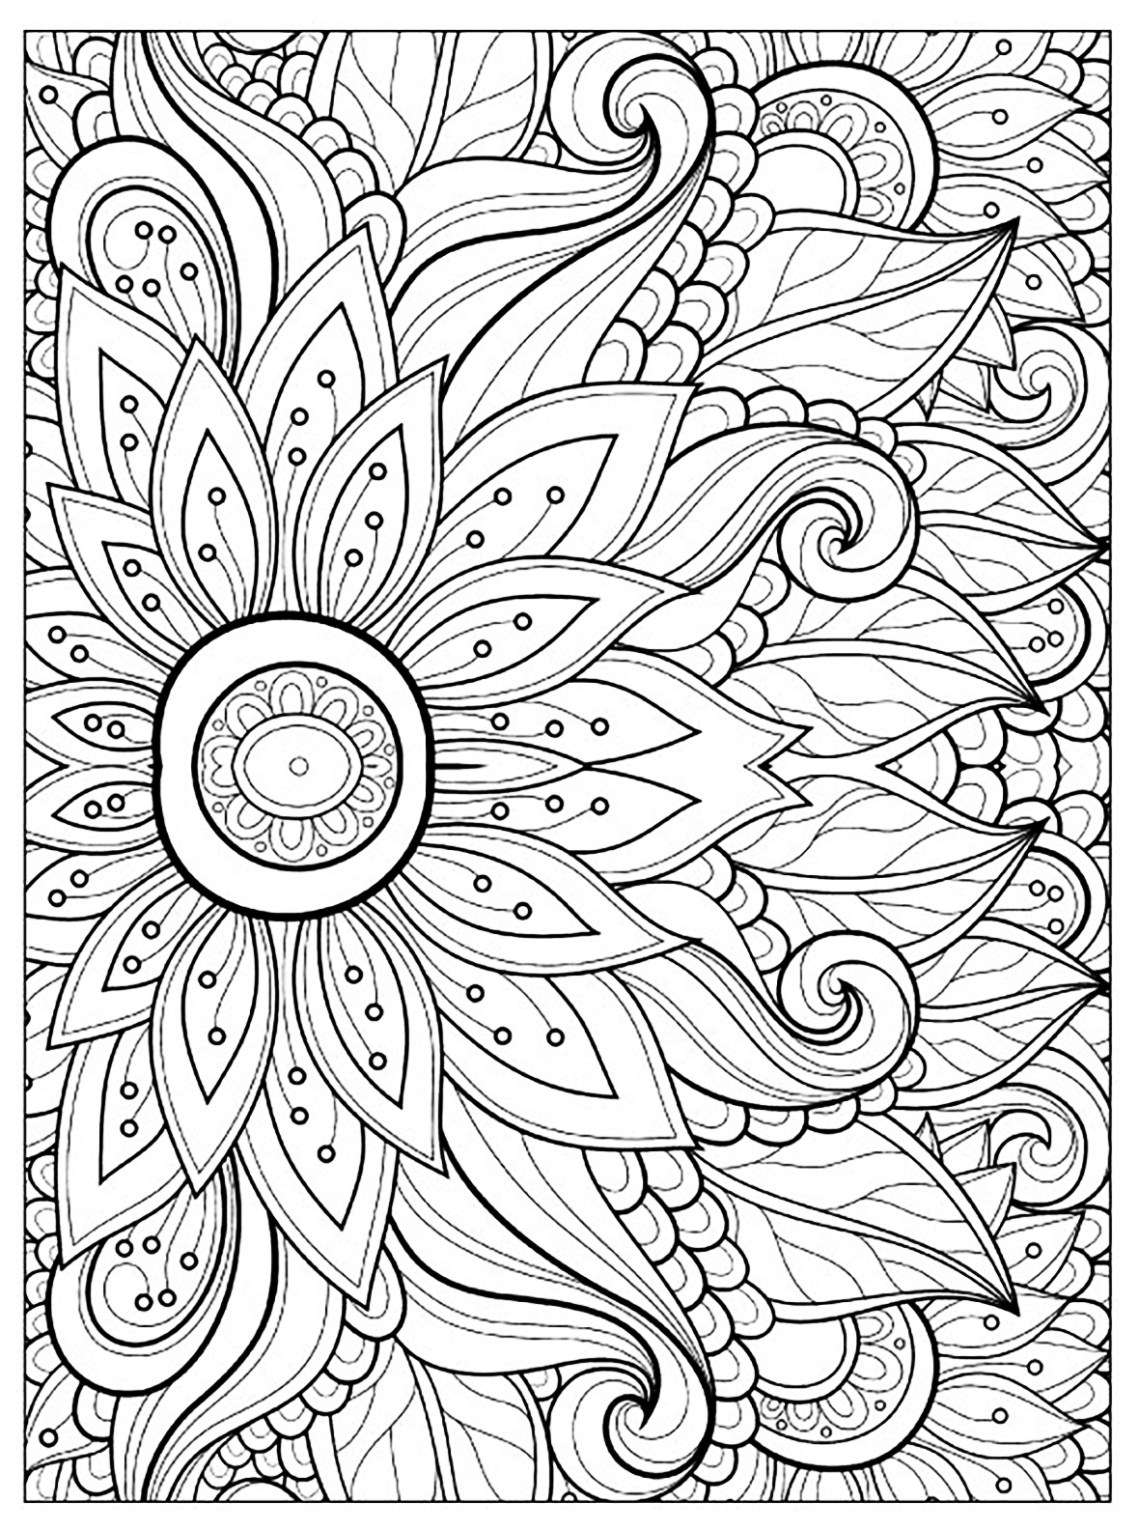 Flowers to download for free - Flowers Kids Coloring Pages | colouring pages flowers free